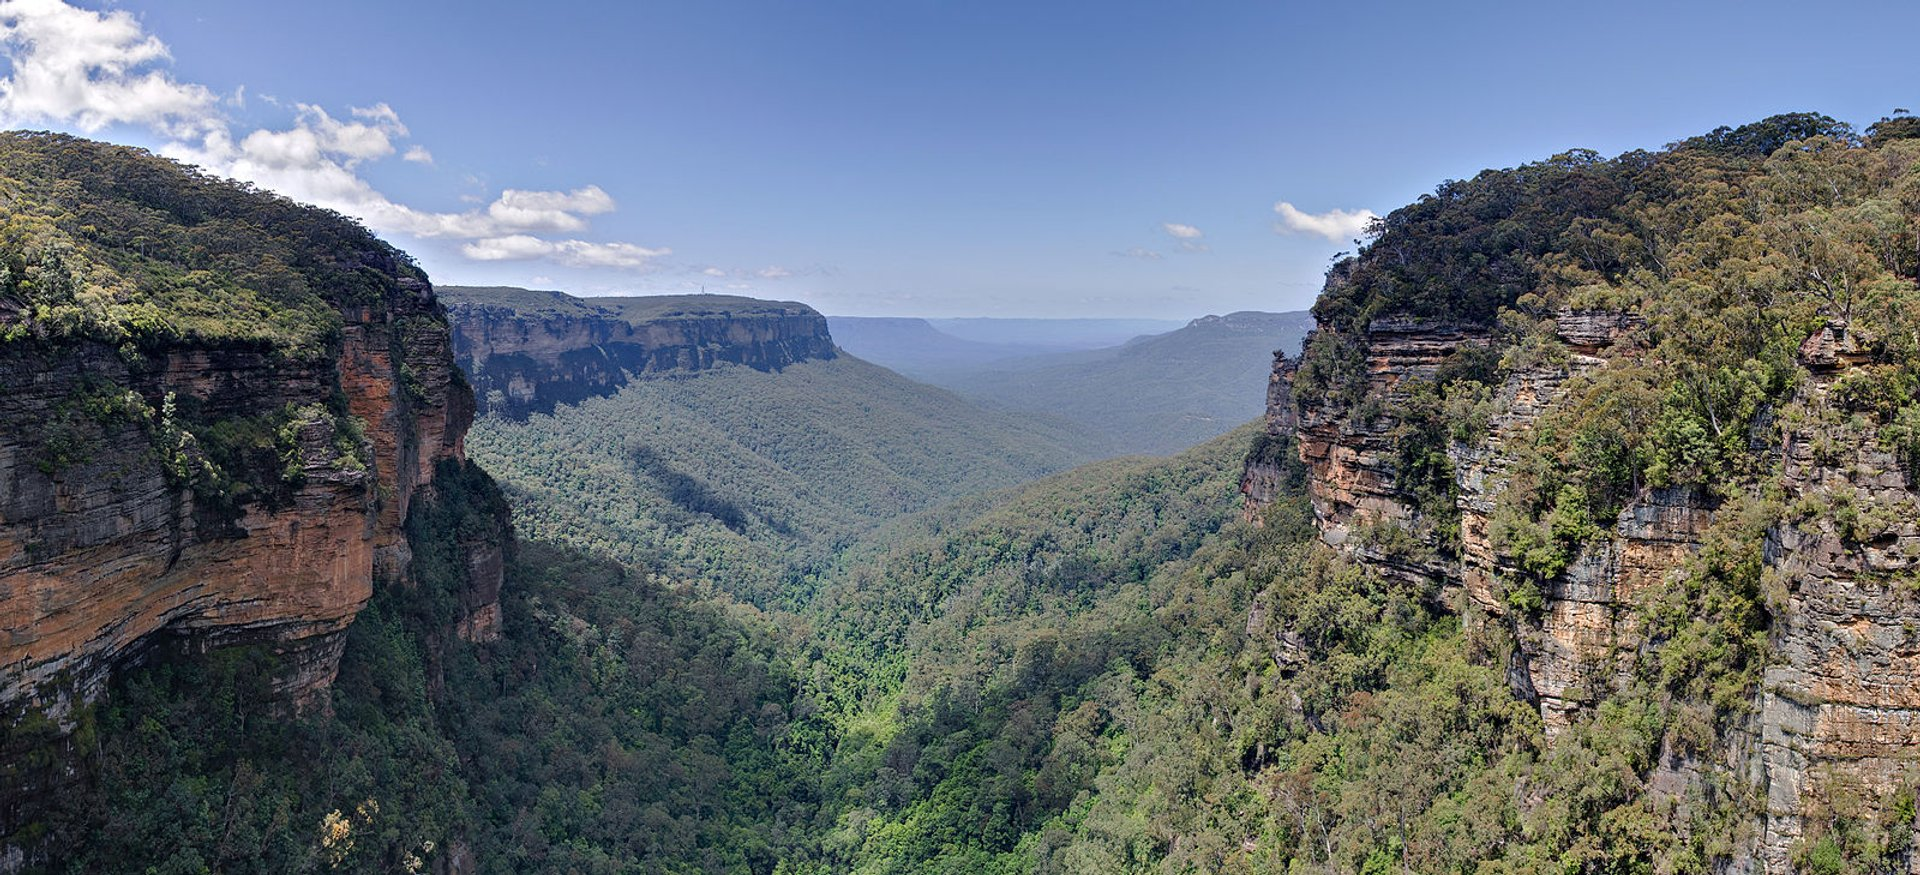 A panoramic view of the Jamison Valley in the Blue Mountains, New South Wales, Australia 2019